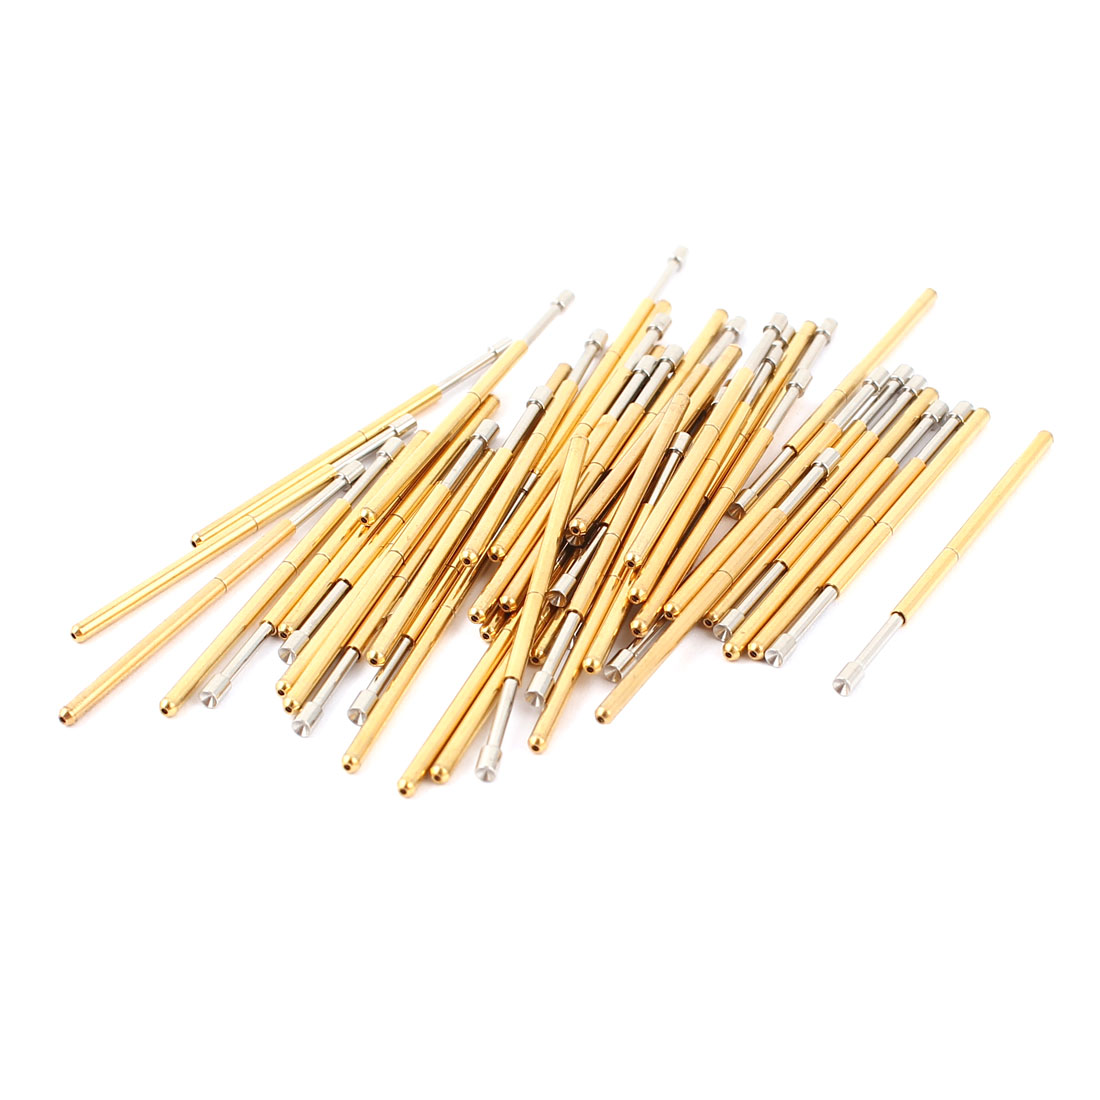 50 Pcs P100-A2 1.5mm Concave Tip Spring Testing Probes Pin 33.3 Length